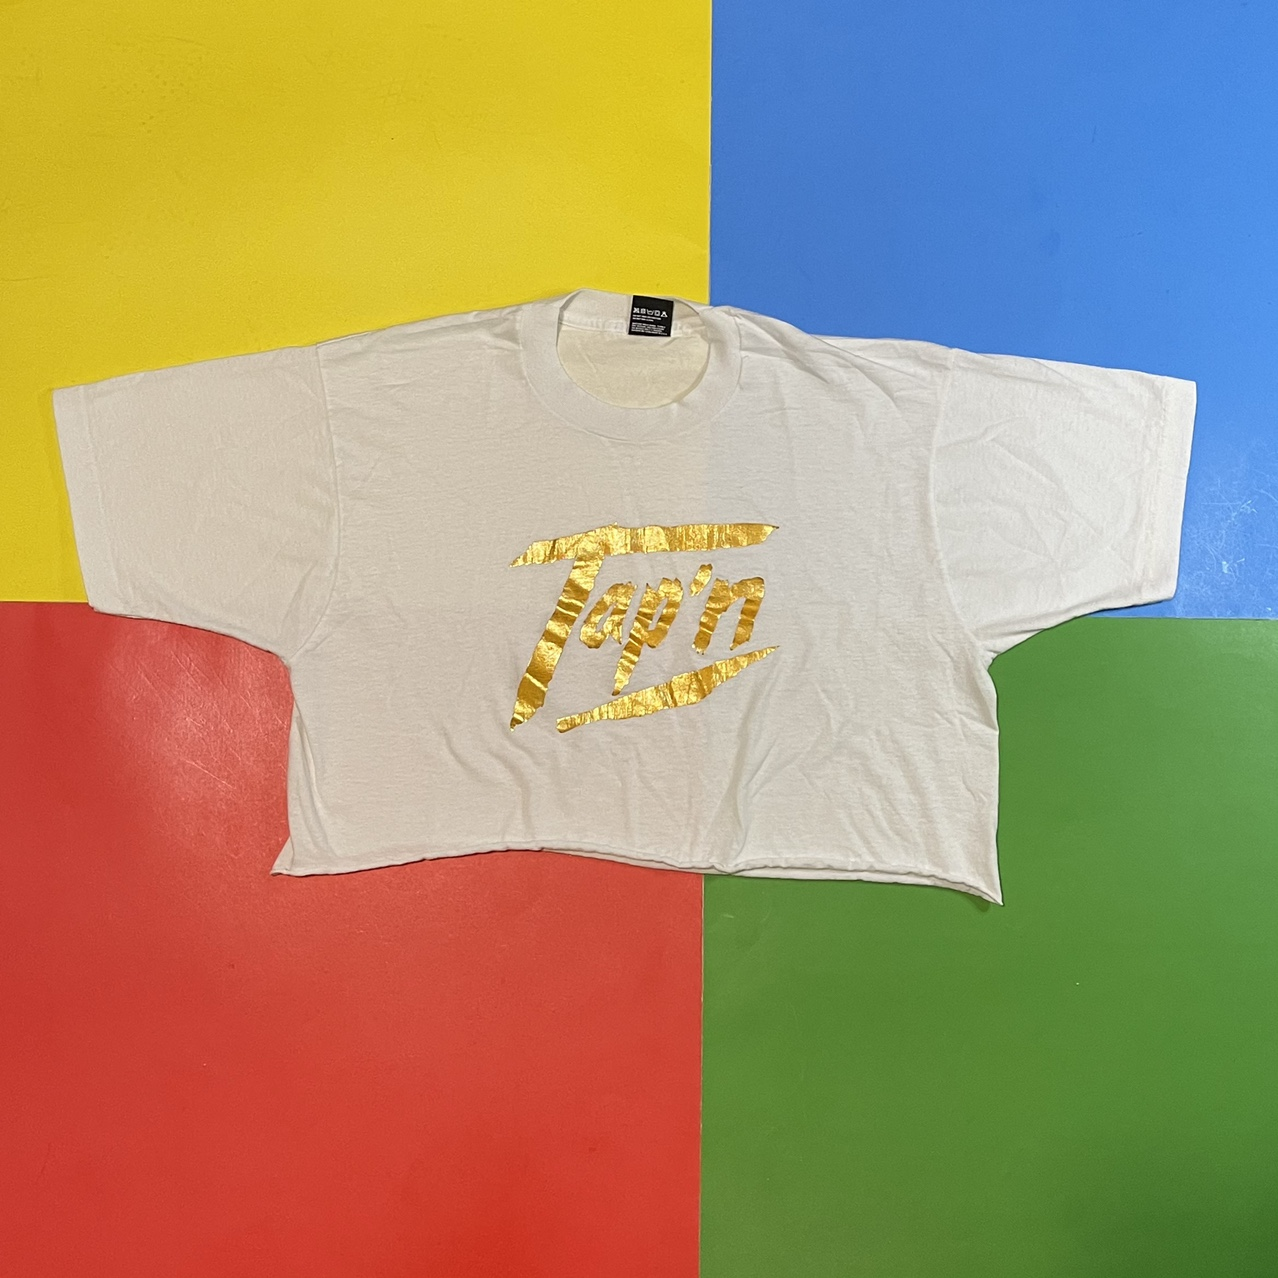 Product Image 1 - Vintage cropped 90's tee. White